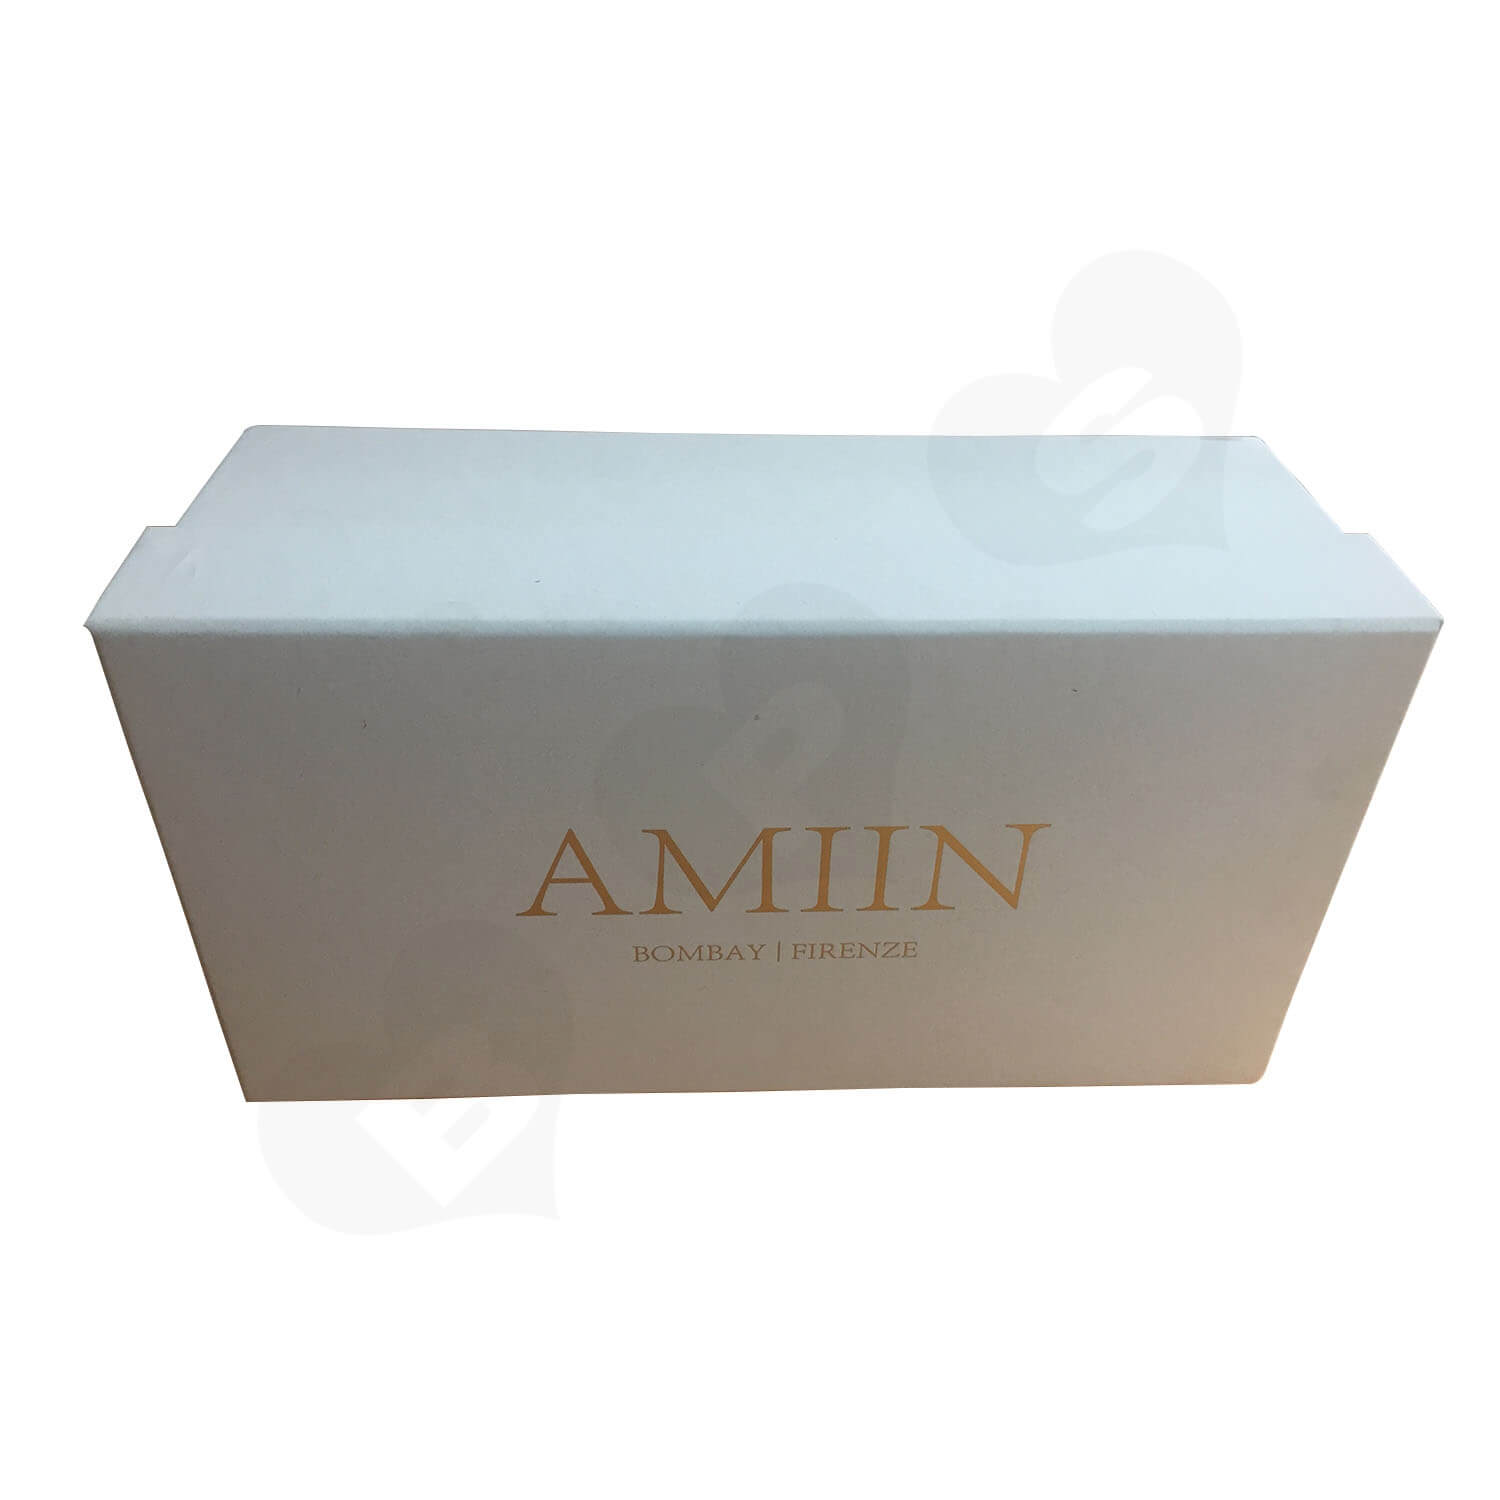 Specialty Paper Gold Foil Logo Stamped Shoe box Side View 5